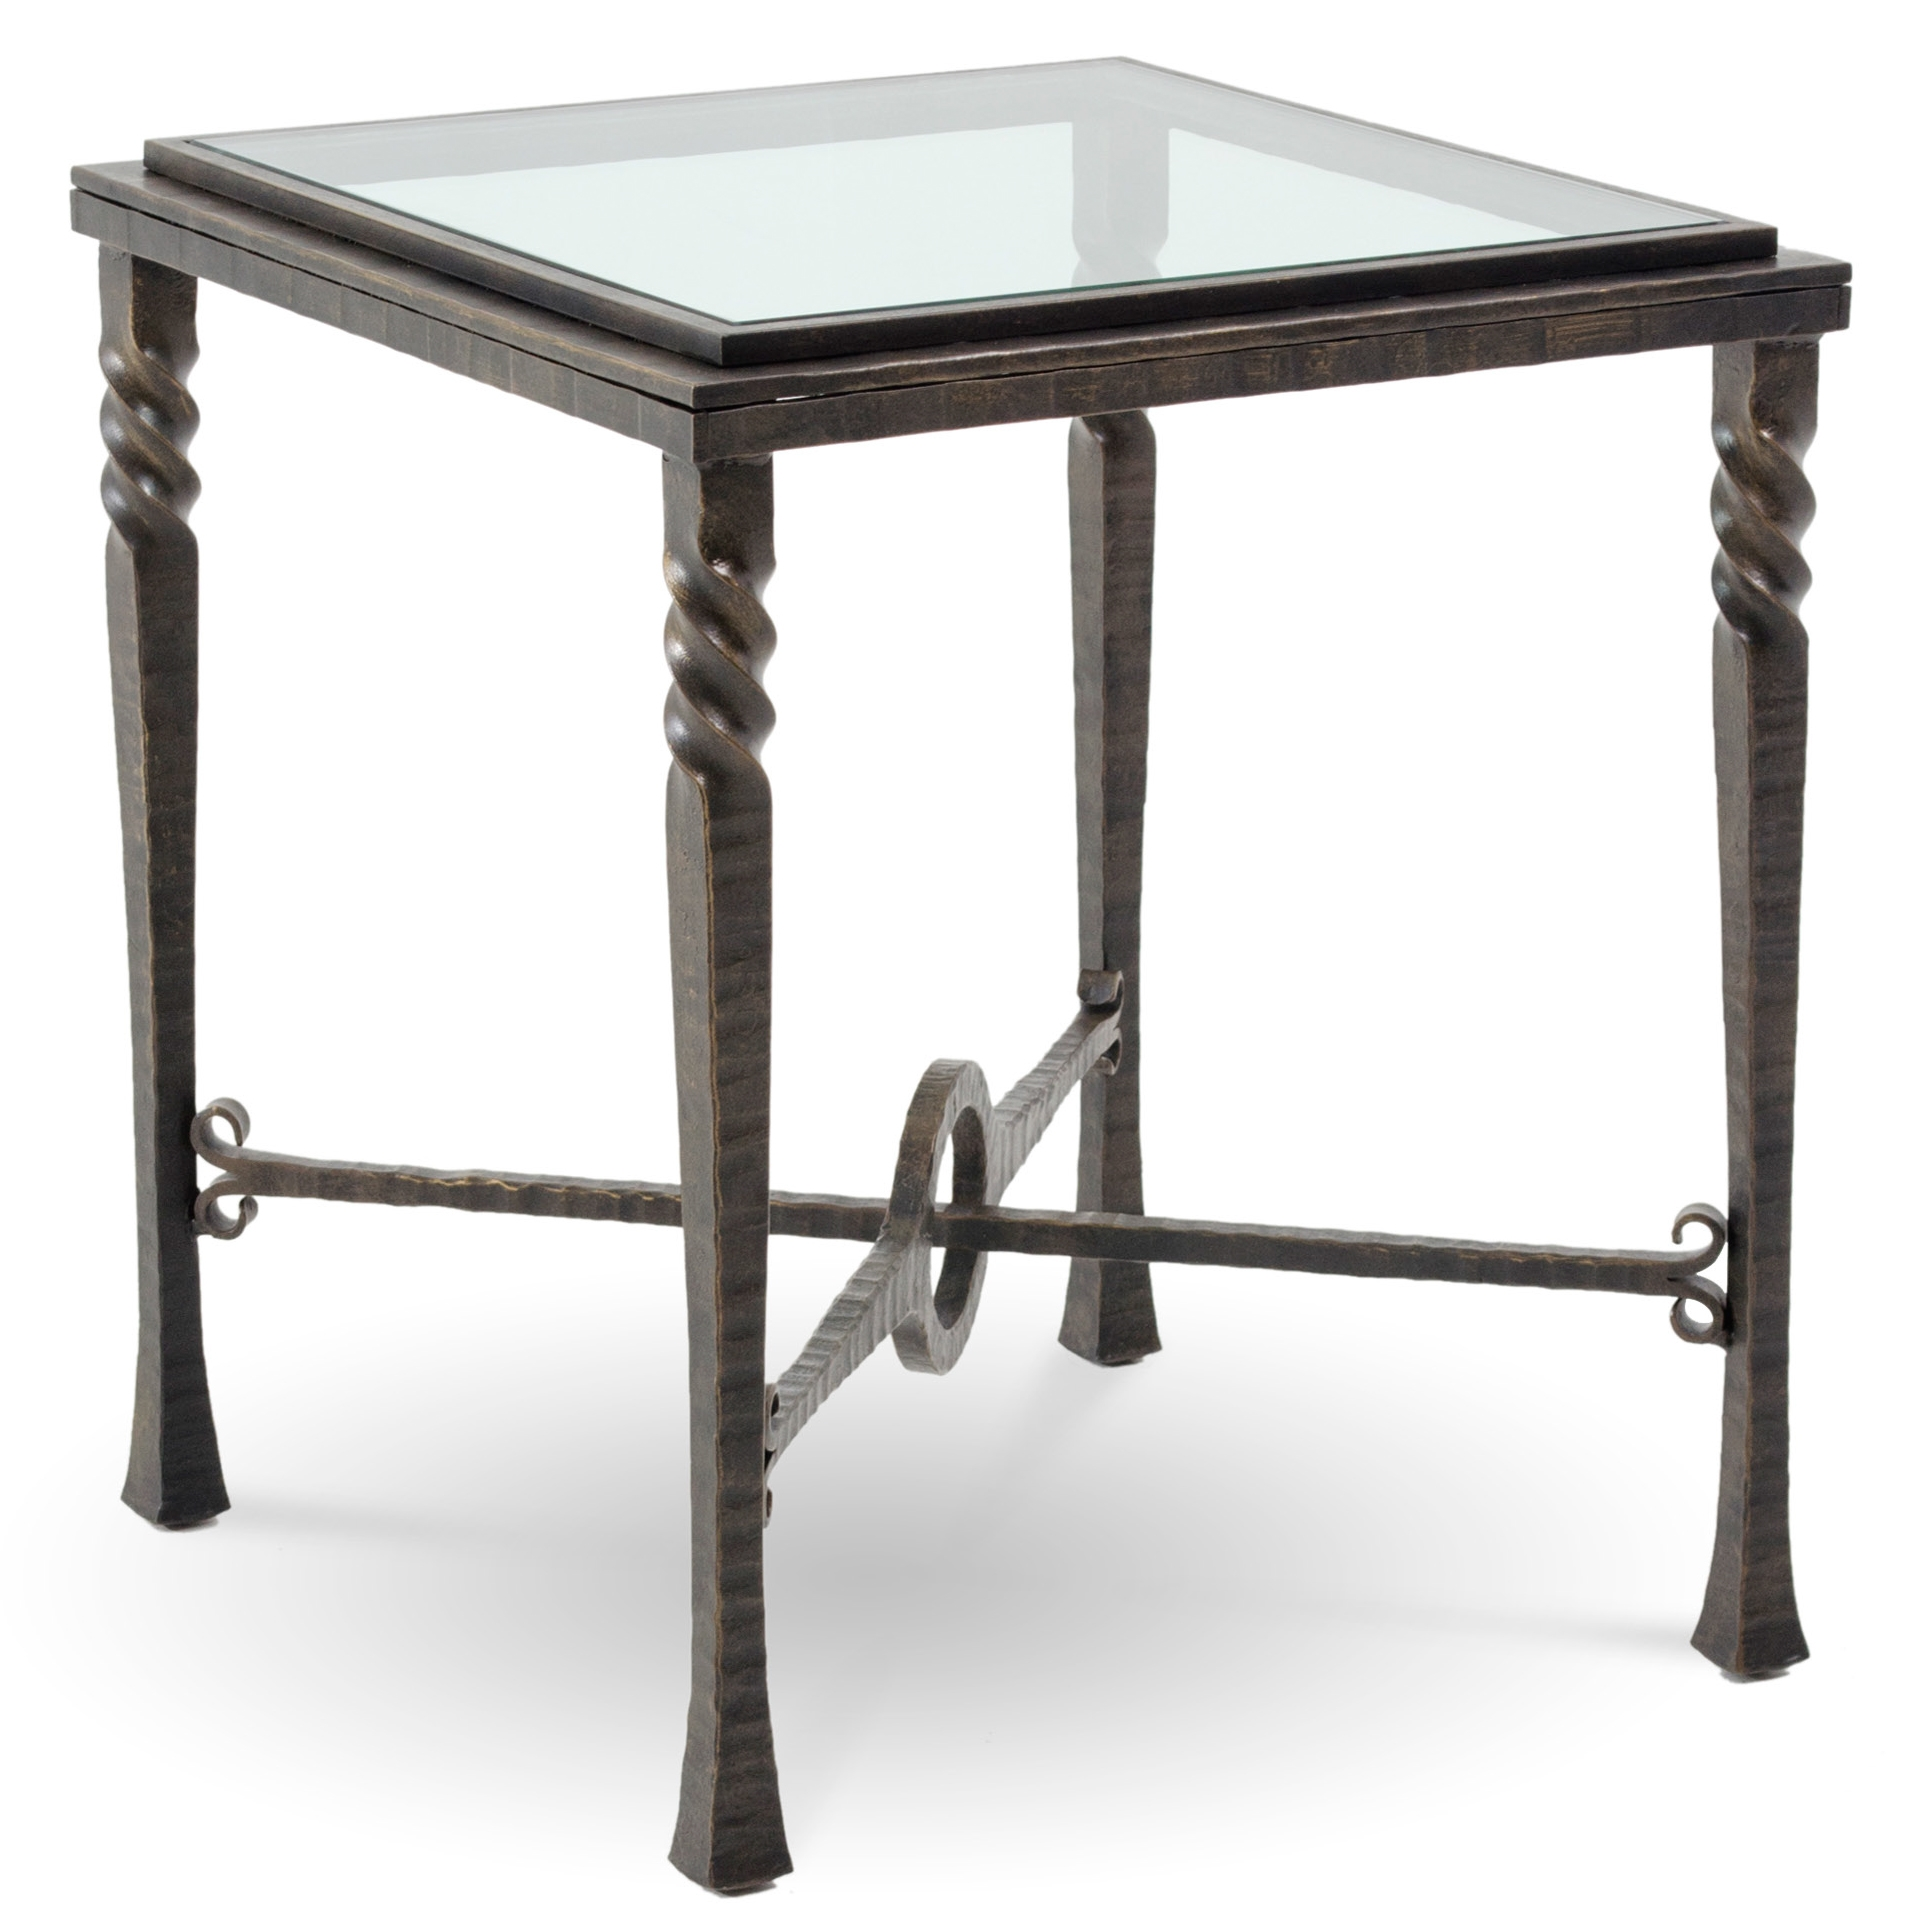 furniture accent tables the outrageous awesome iron base end table omega square with glass top charleston forge twi larger bedroom makeup vanity lights dakota coffee inch side